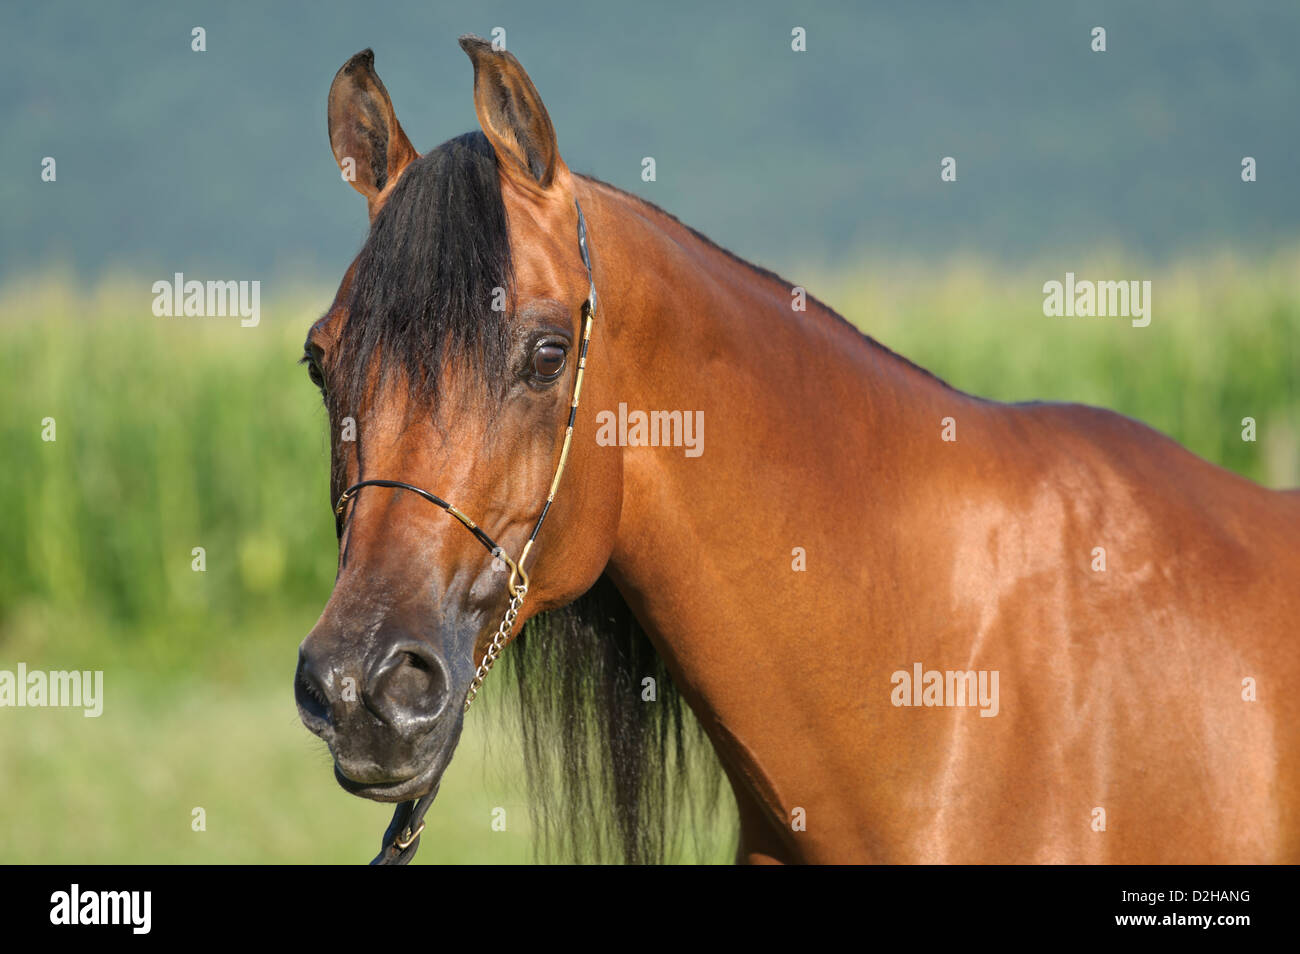 Horse in side view head shot, Arabian bay mare close up in open summer landscape outdoors. - Stock Image